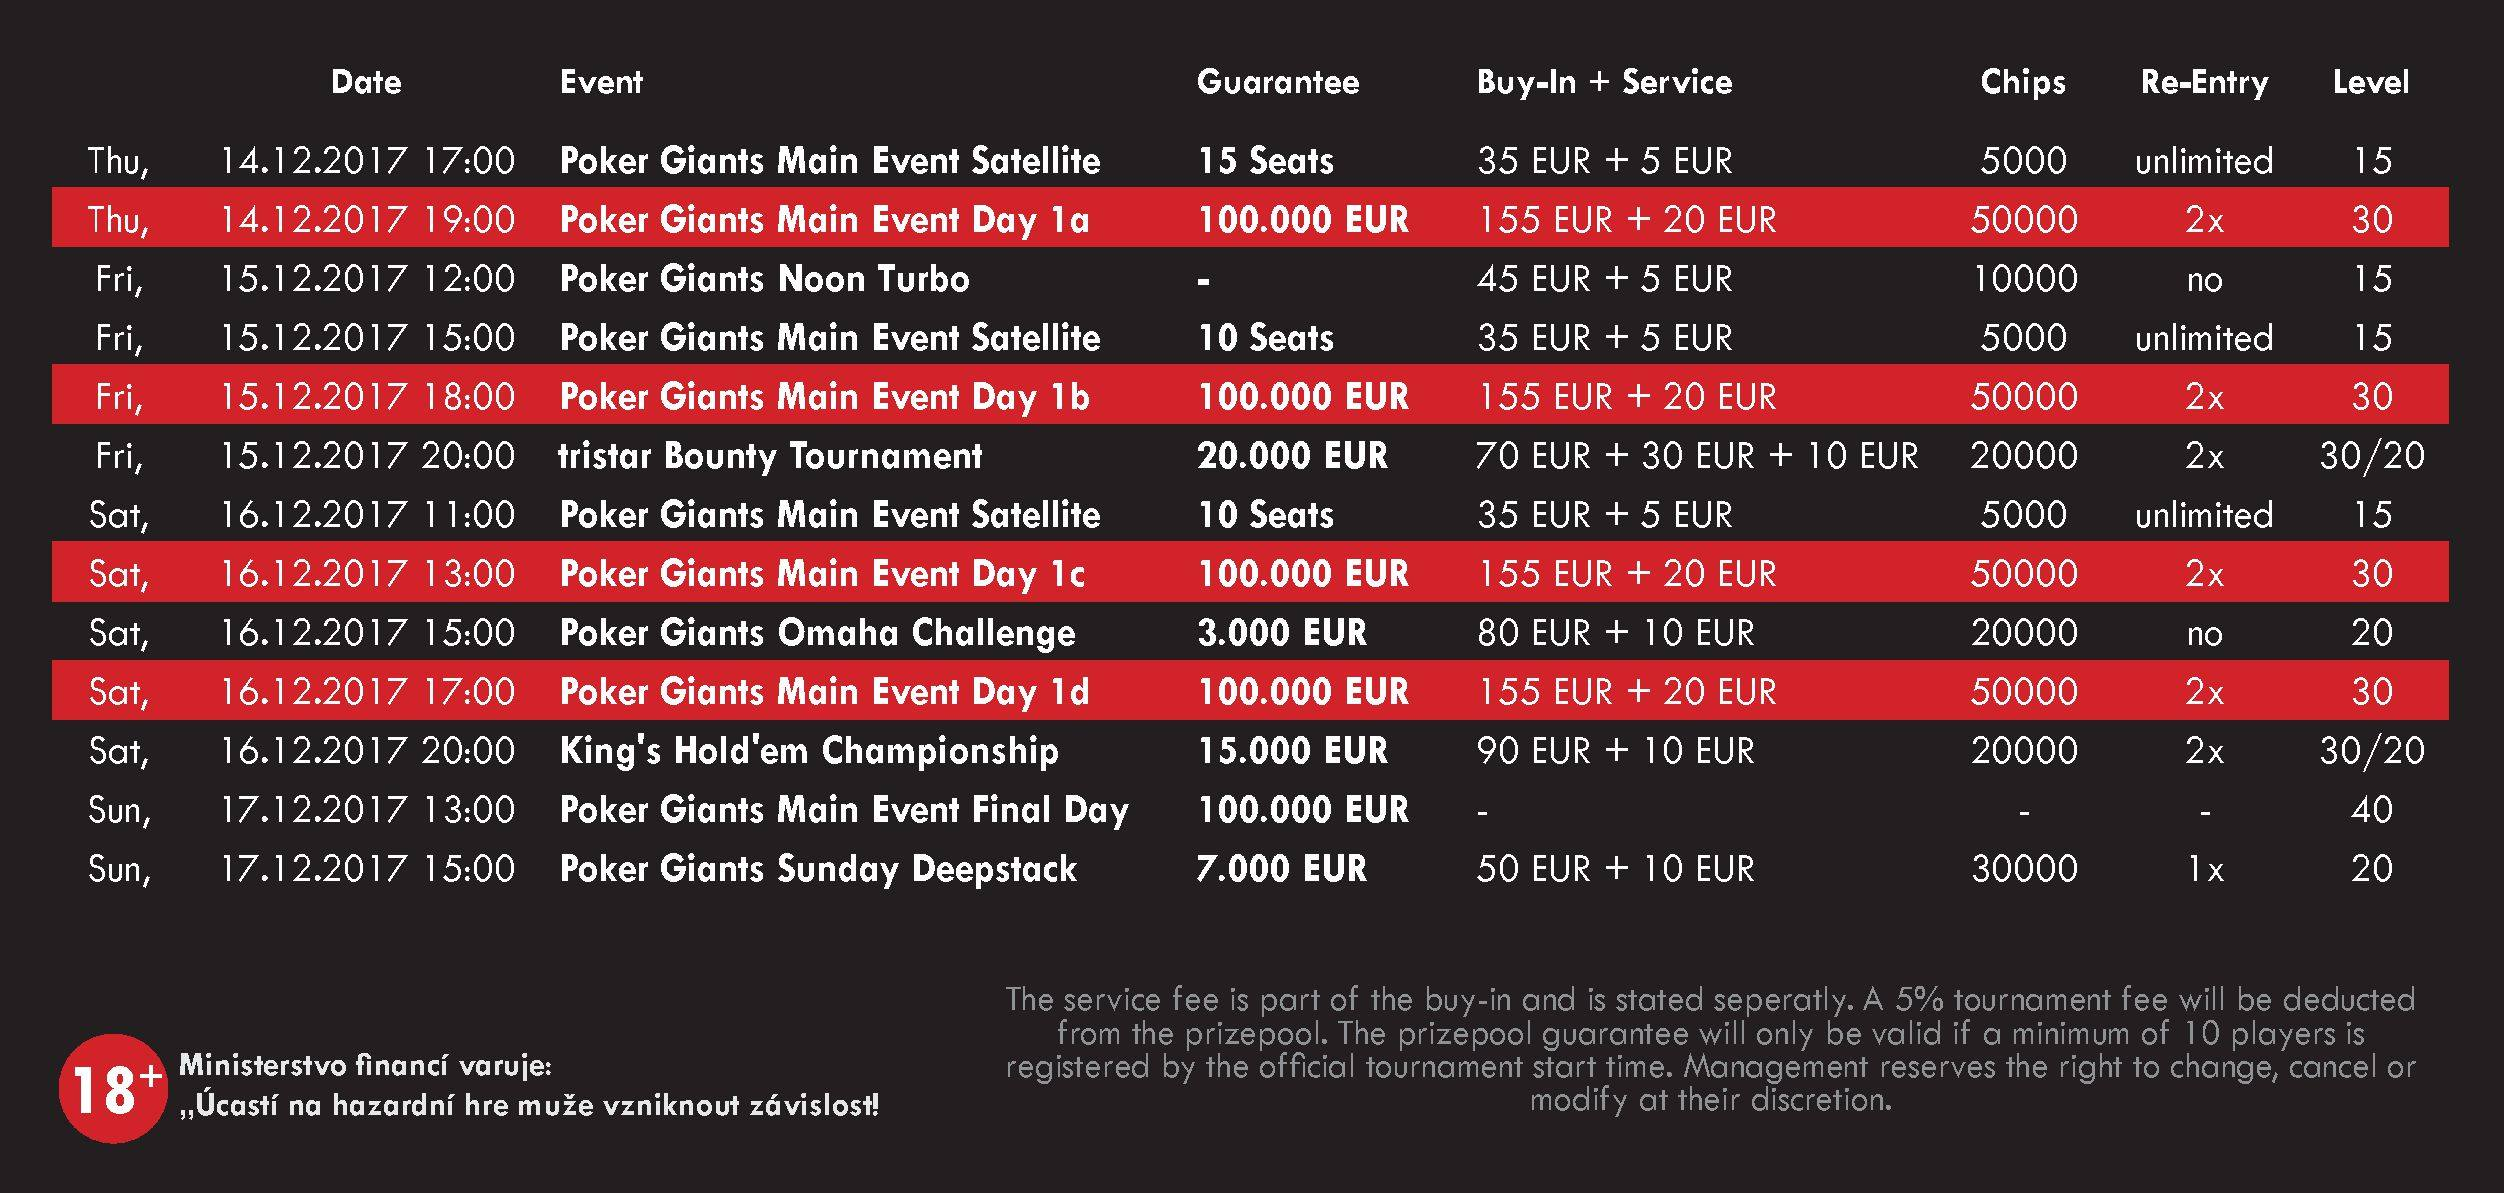 Poker Giants Masters Schedule